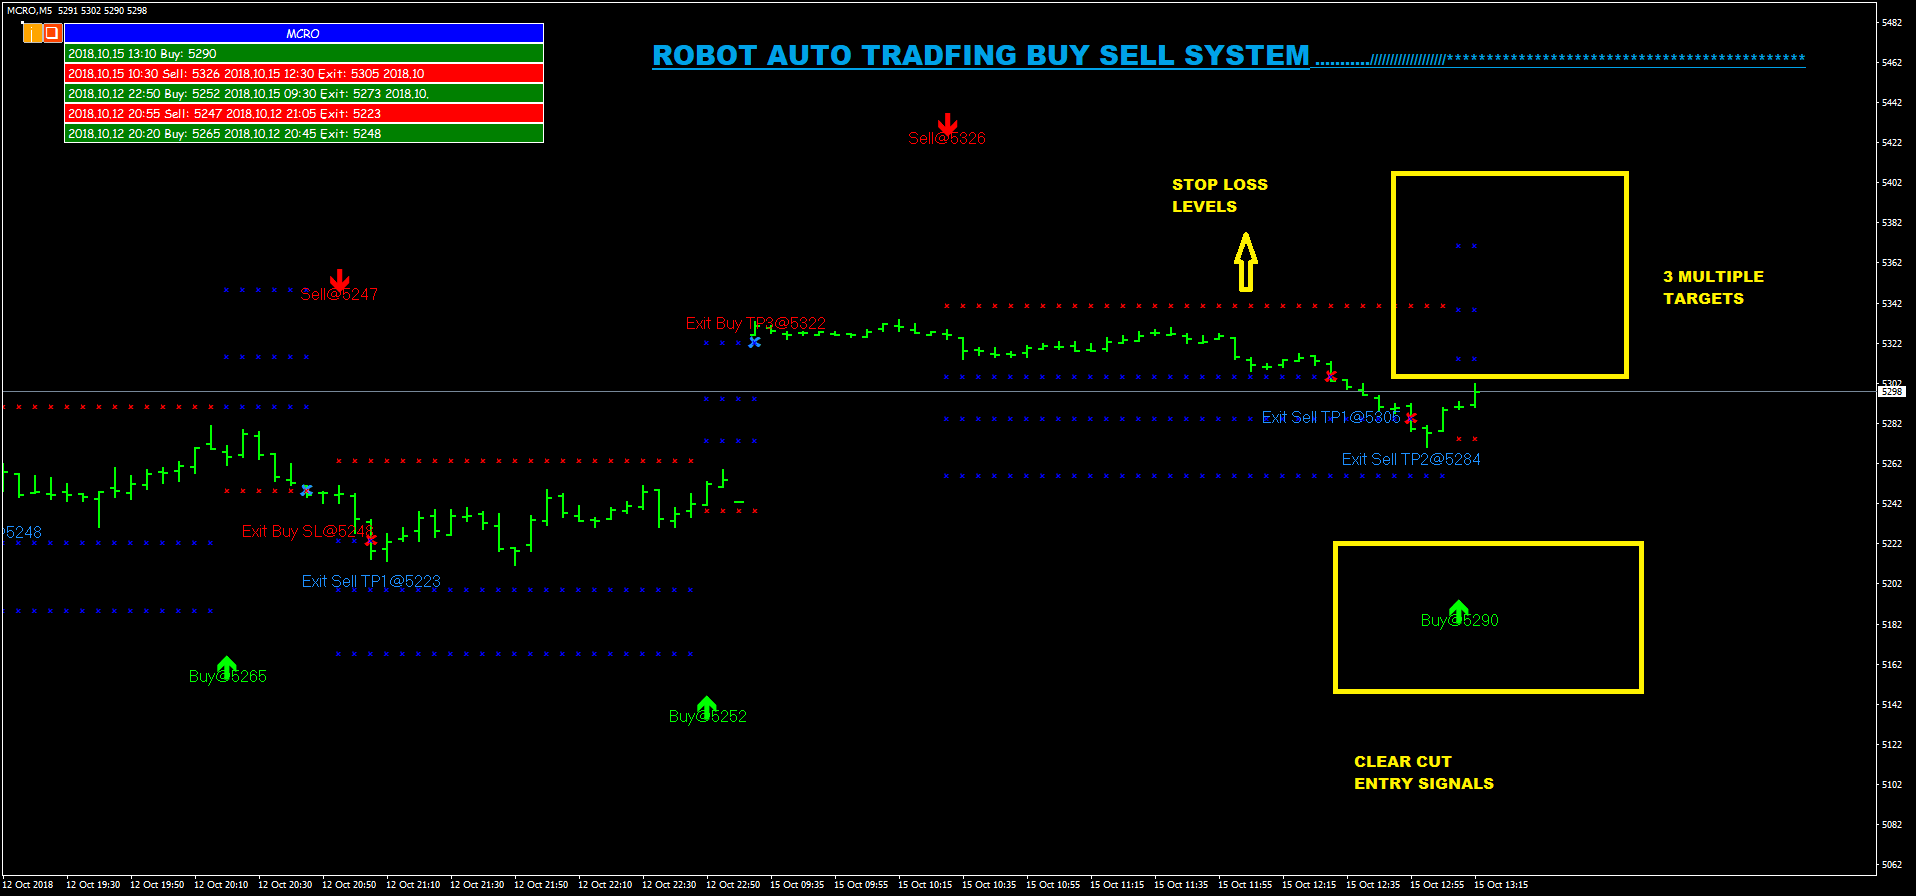 BUY SELL ROBOT SYSTEM